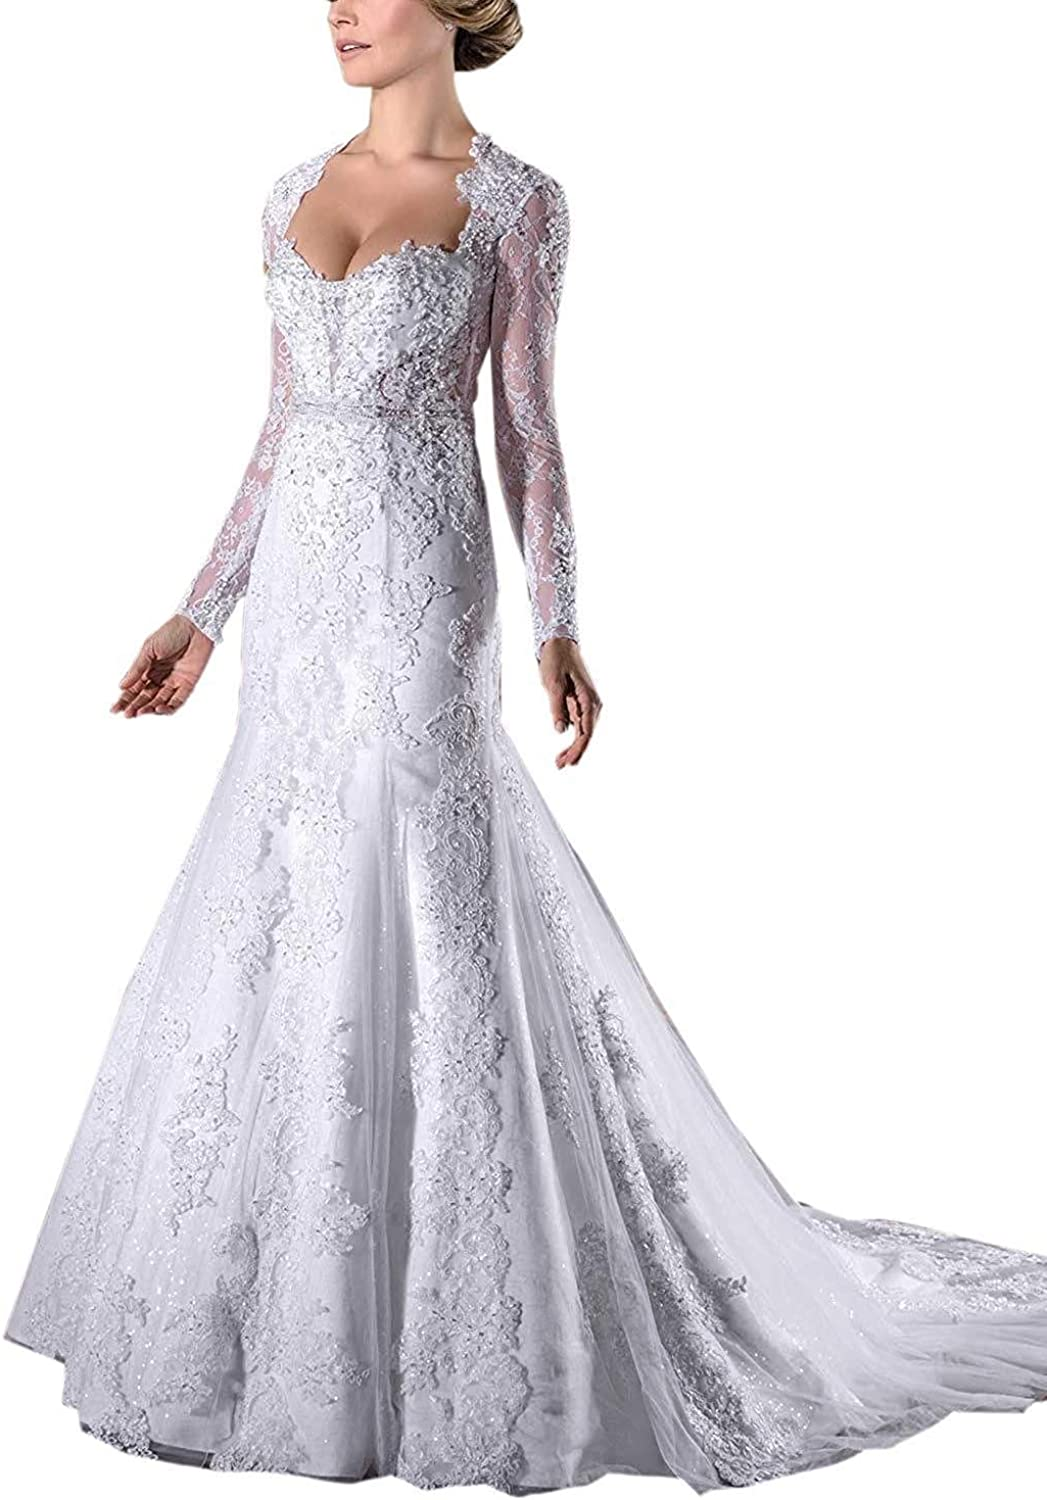 MARSEN Sweetheart Wedding Dresses for Bride Long Sleeve Applique Mermaid Bridal Gown